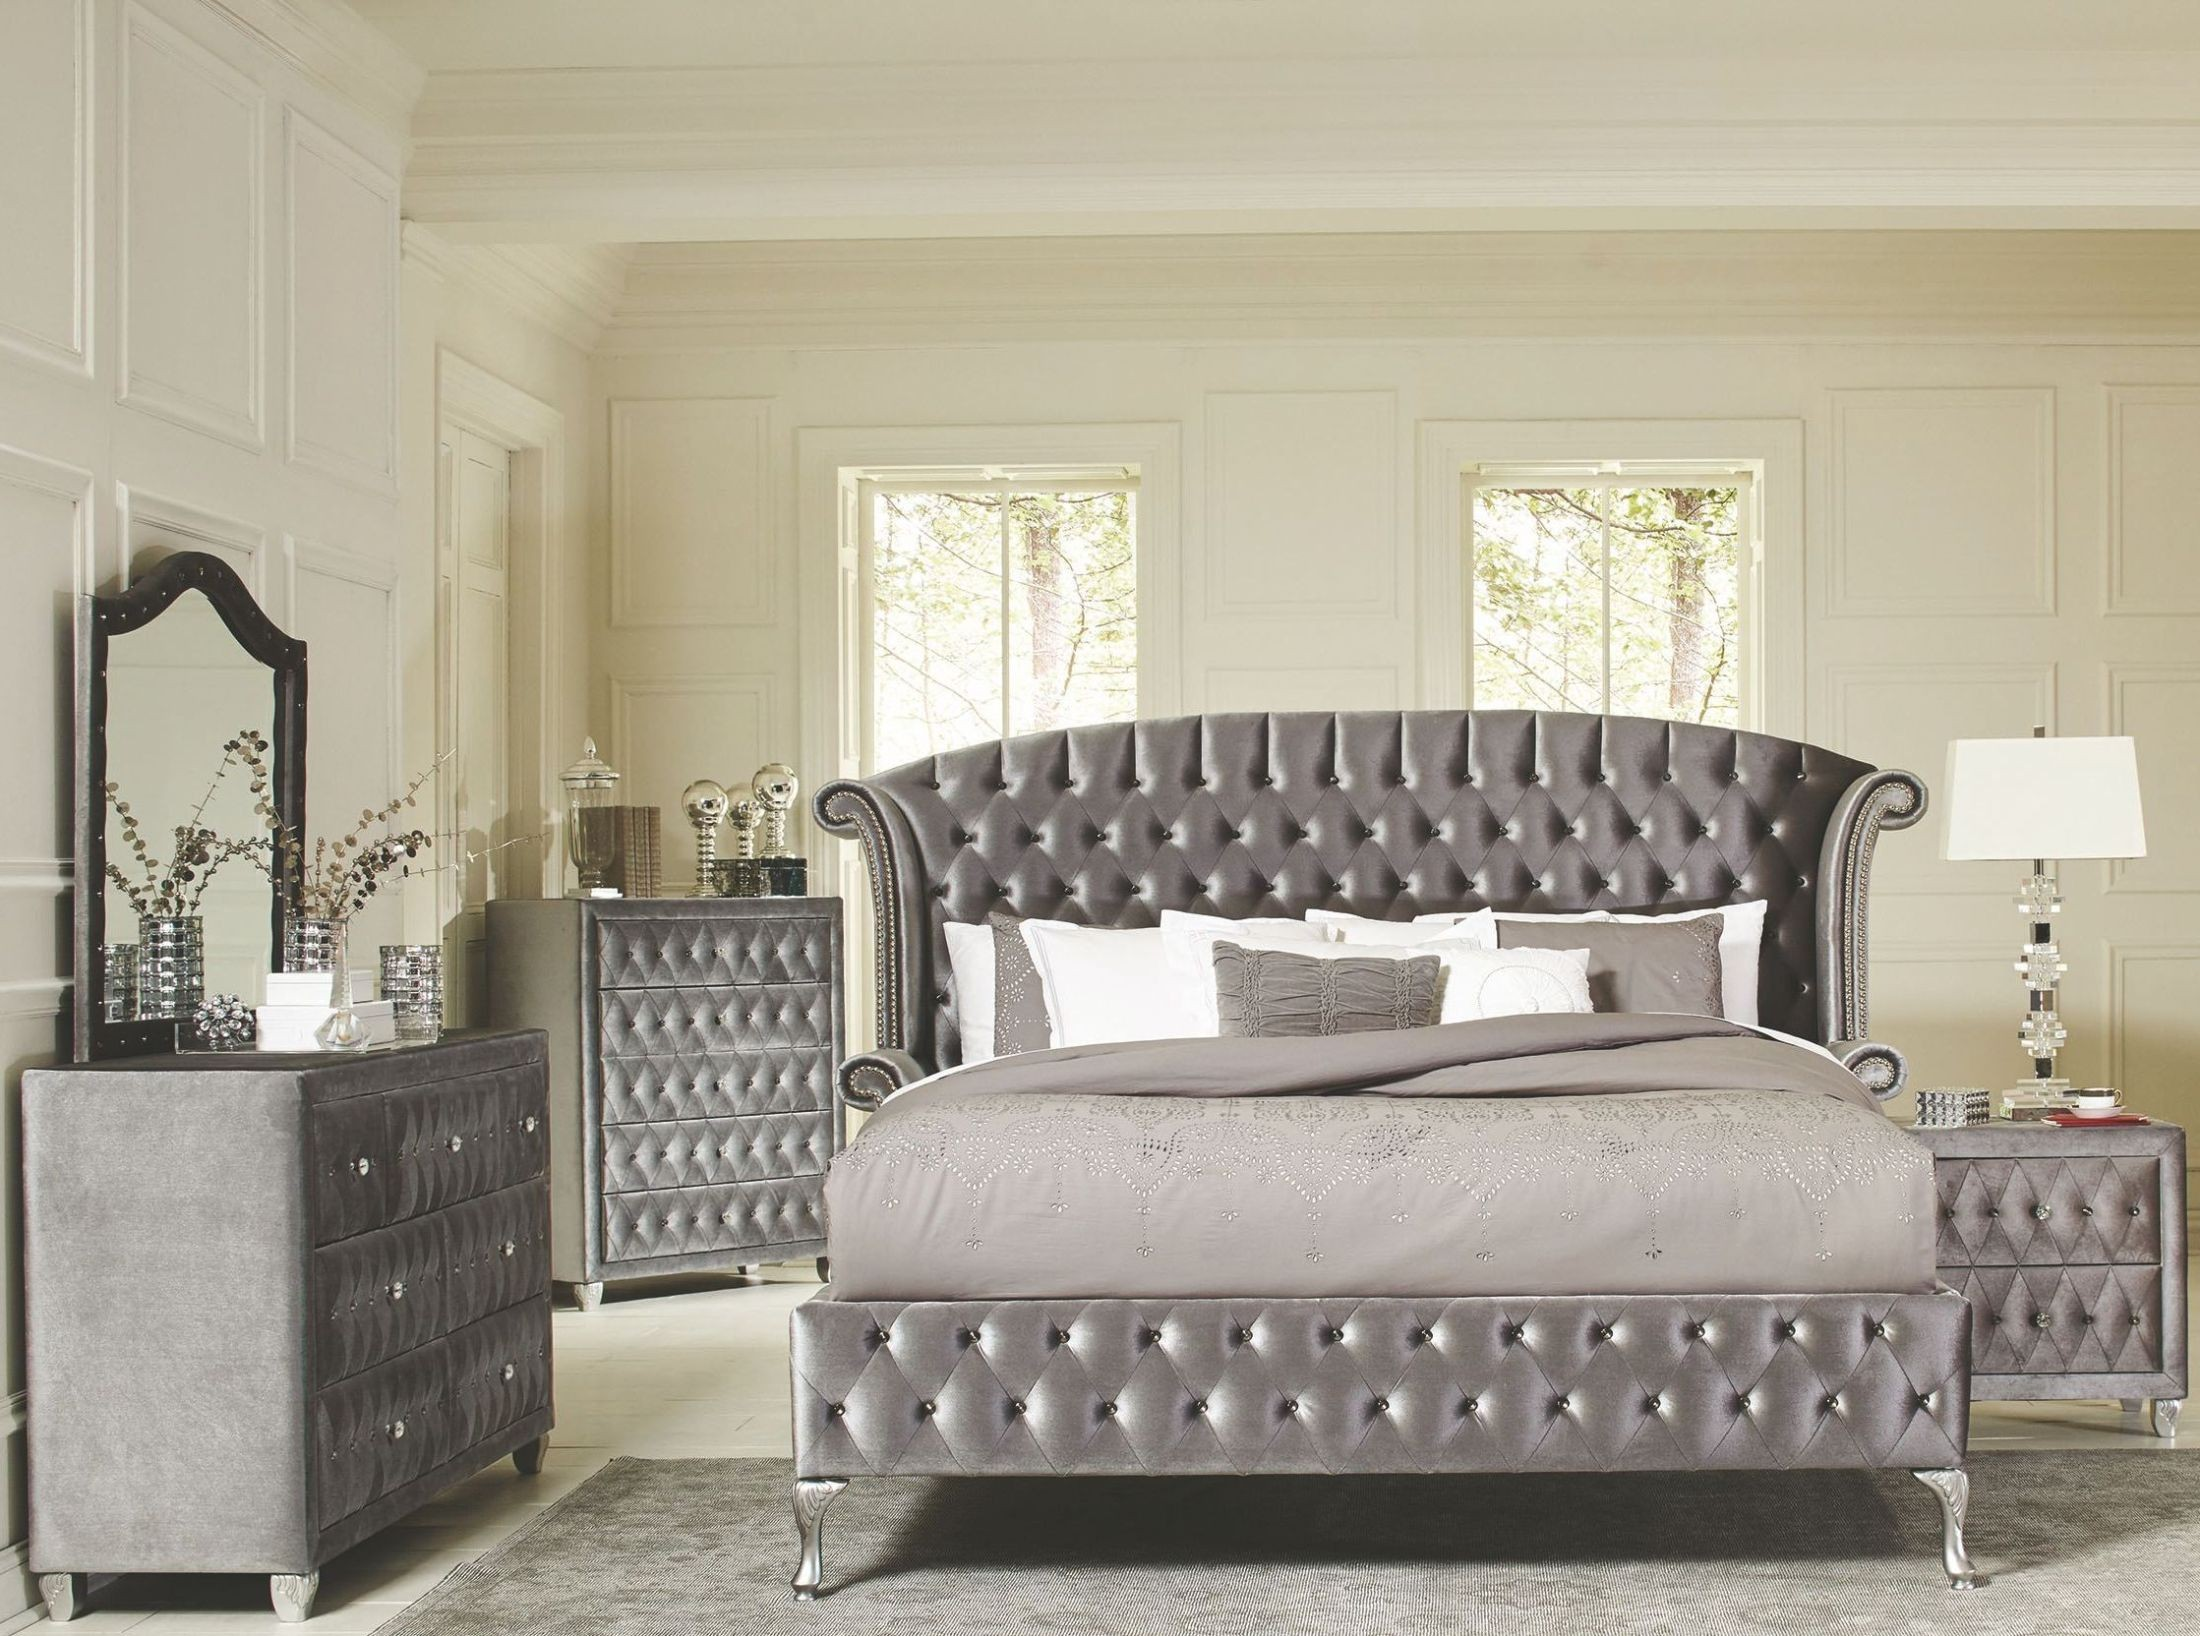 Impressive Upholstered Bedroom Set Design Ideas